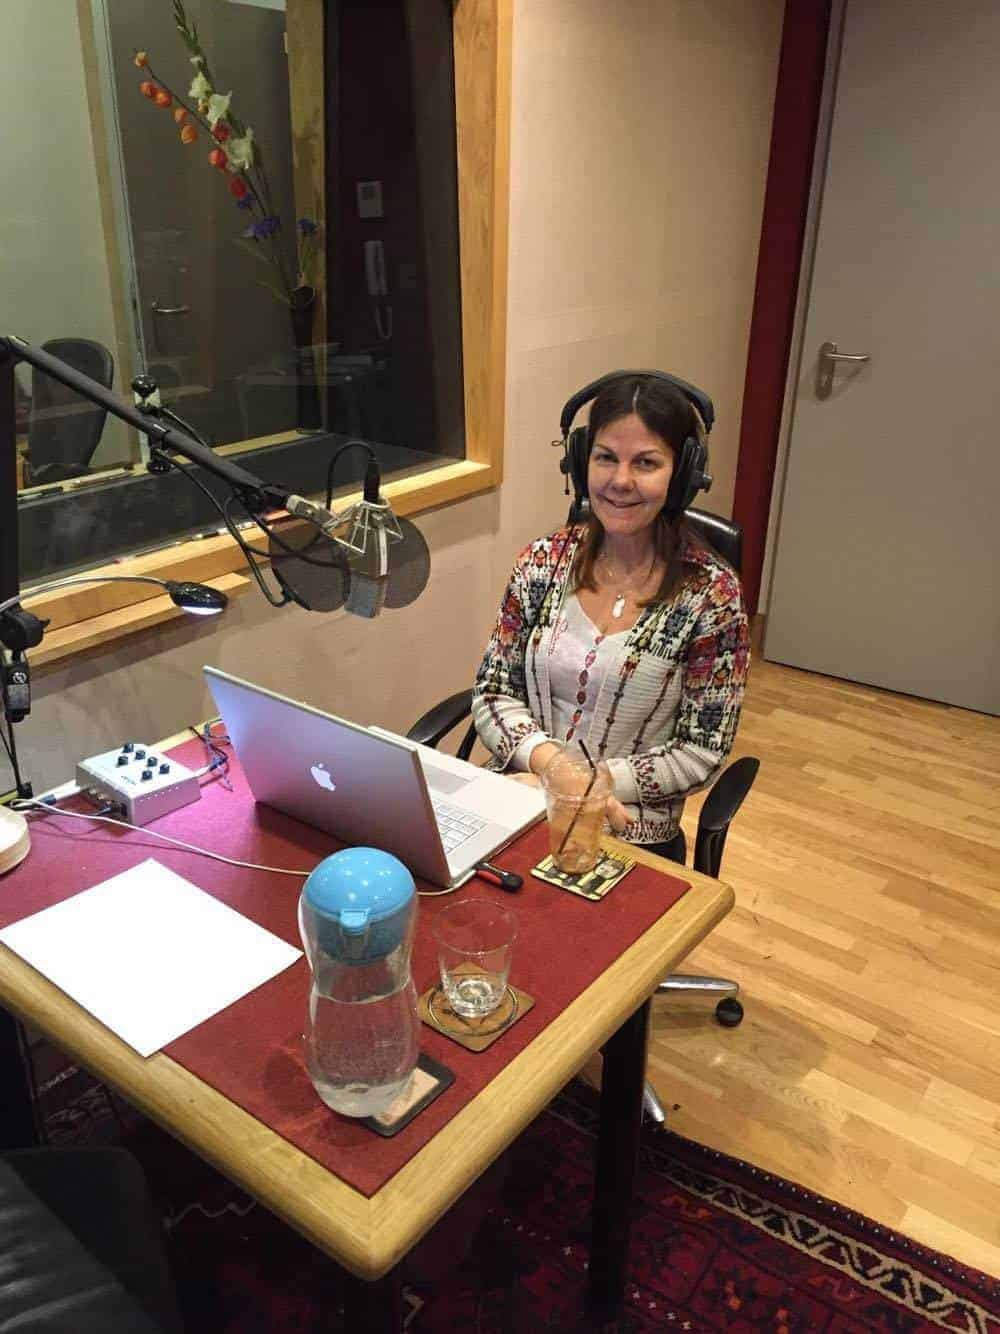 Now with a two-book deal signed, Sophie recorded her audio book and is preparing for her publisher's media campaign and for international recognition.